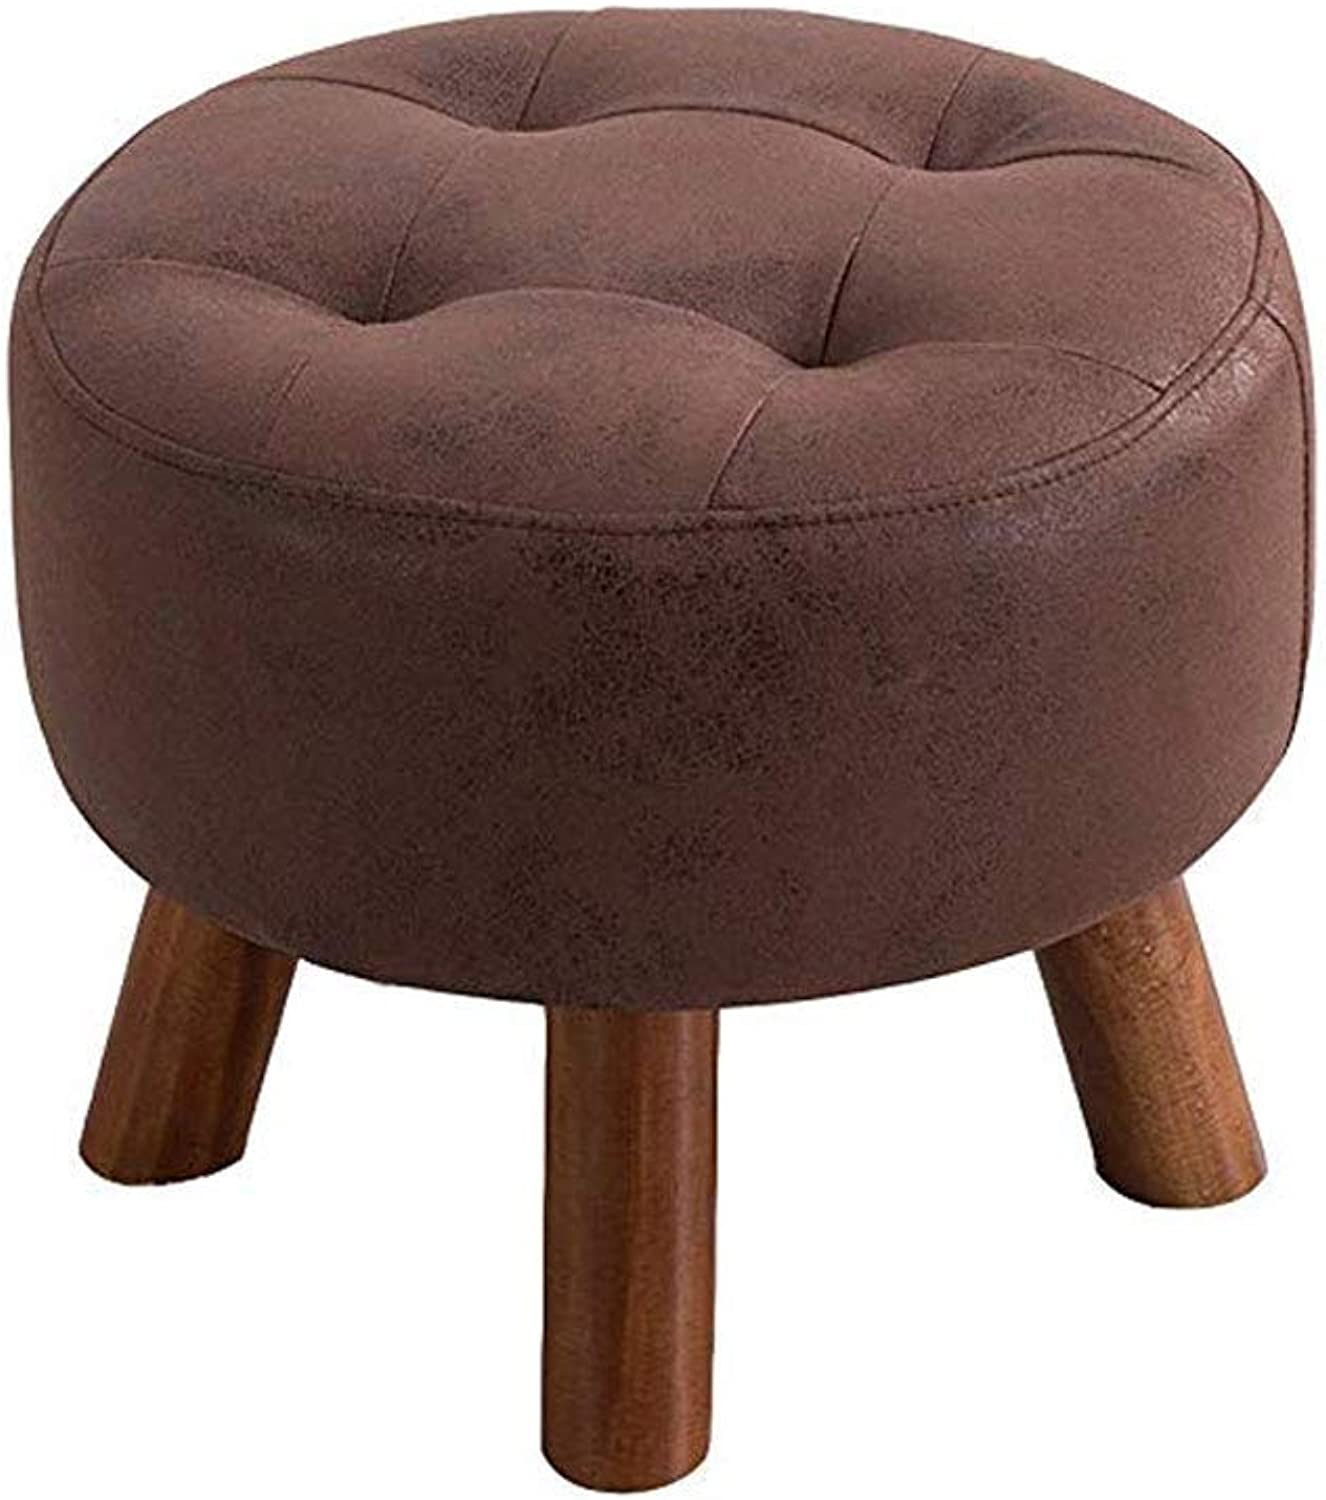 GJD Solid Wood Stool, Small Stool Fashion Creative Sofa StoolTable Wearing shoes Sitting Pier Dressing Footstool,Optional (color   Dark Brown)